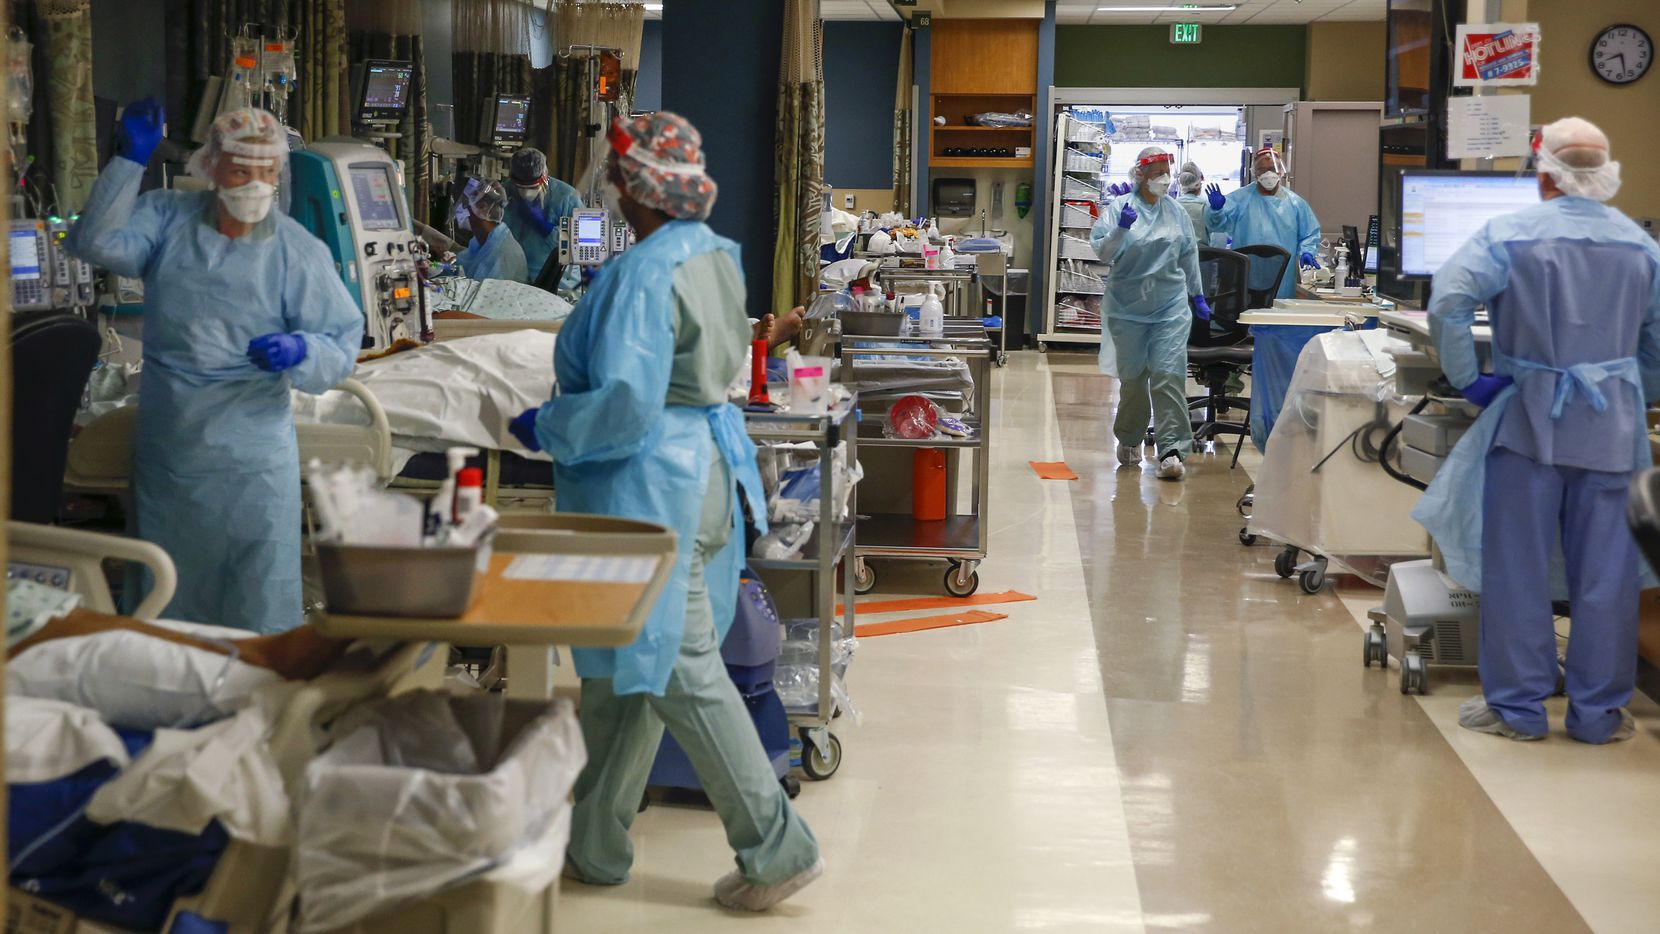 Healthcare workers work to treat critically ill patients who fill bed after bed in the Parkland Hospital COVID-19 Tactical Care Unit on Saturday, June 27, 2020 in Dallas.